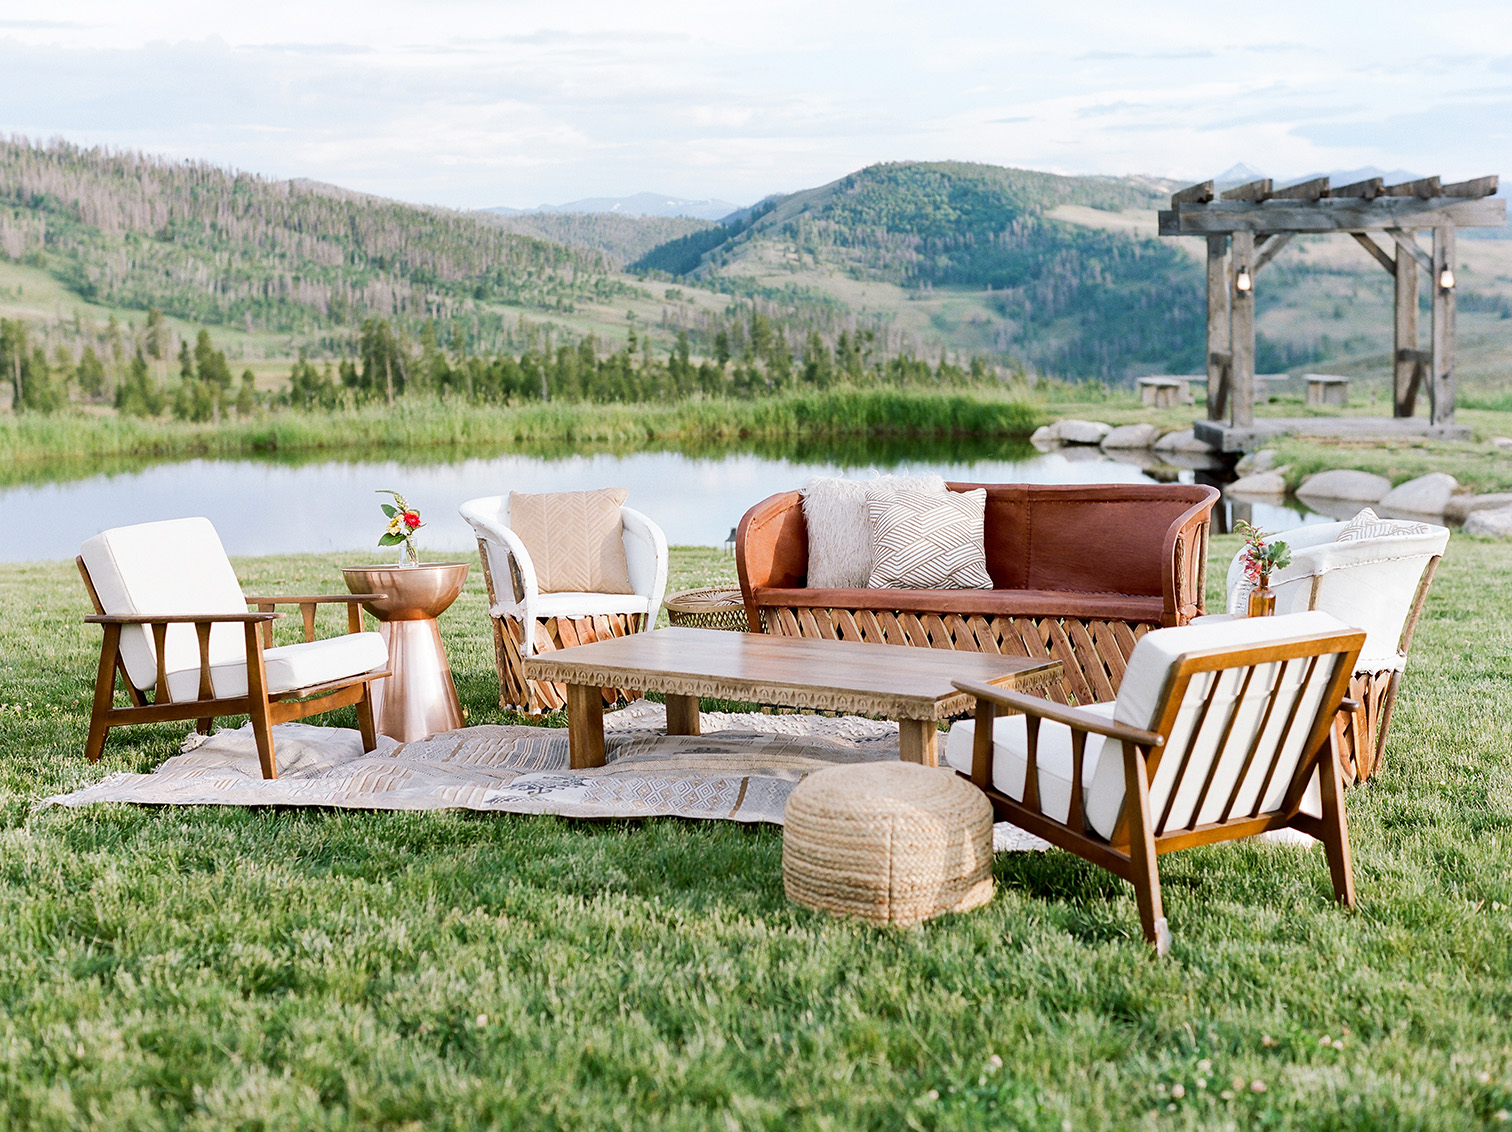 Colorado Destination Wedding, Cocktail Hour Lounge Furniture